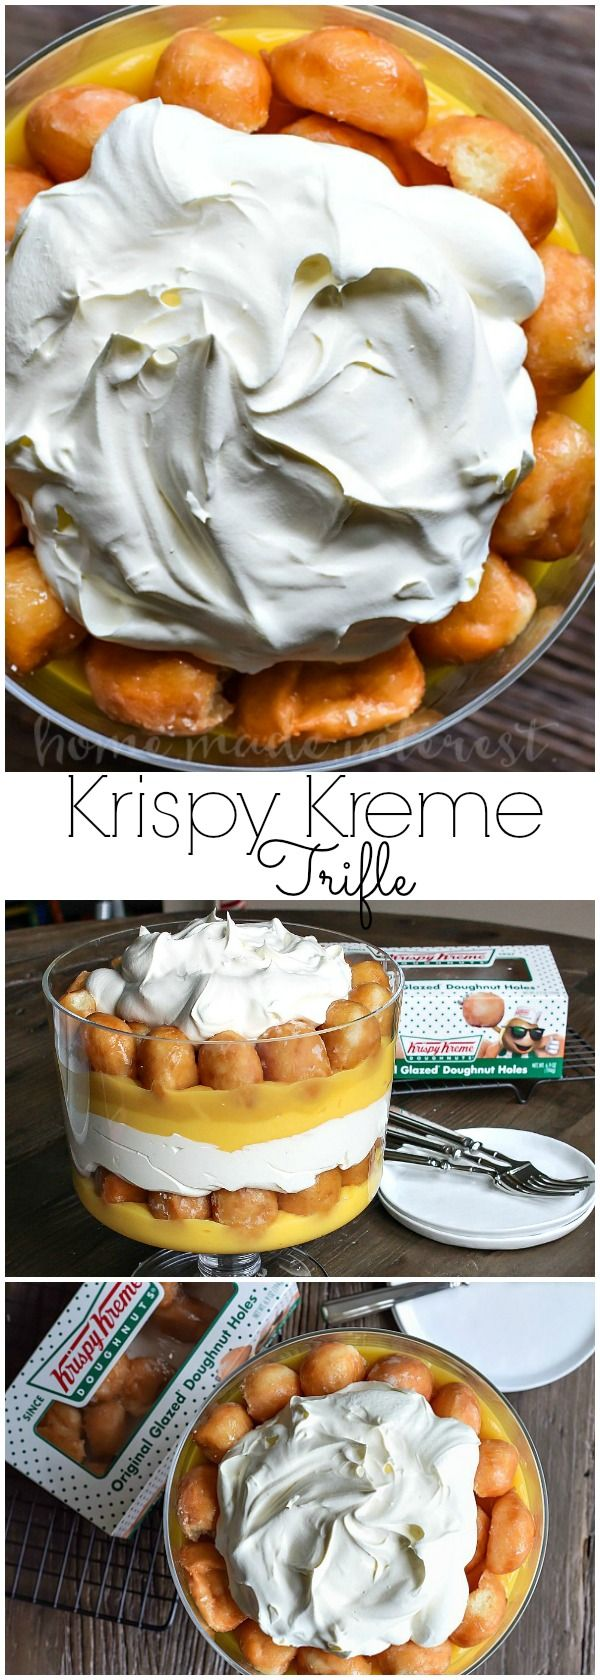 This decadent dessert recipe uses Krispy Kreme doughnuts to make an easy trifle recipe with layers of whipped cream, vanilla pudding and donut holes.